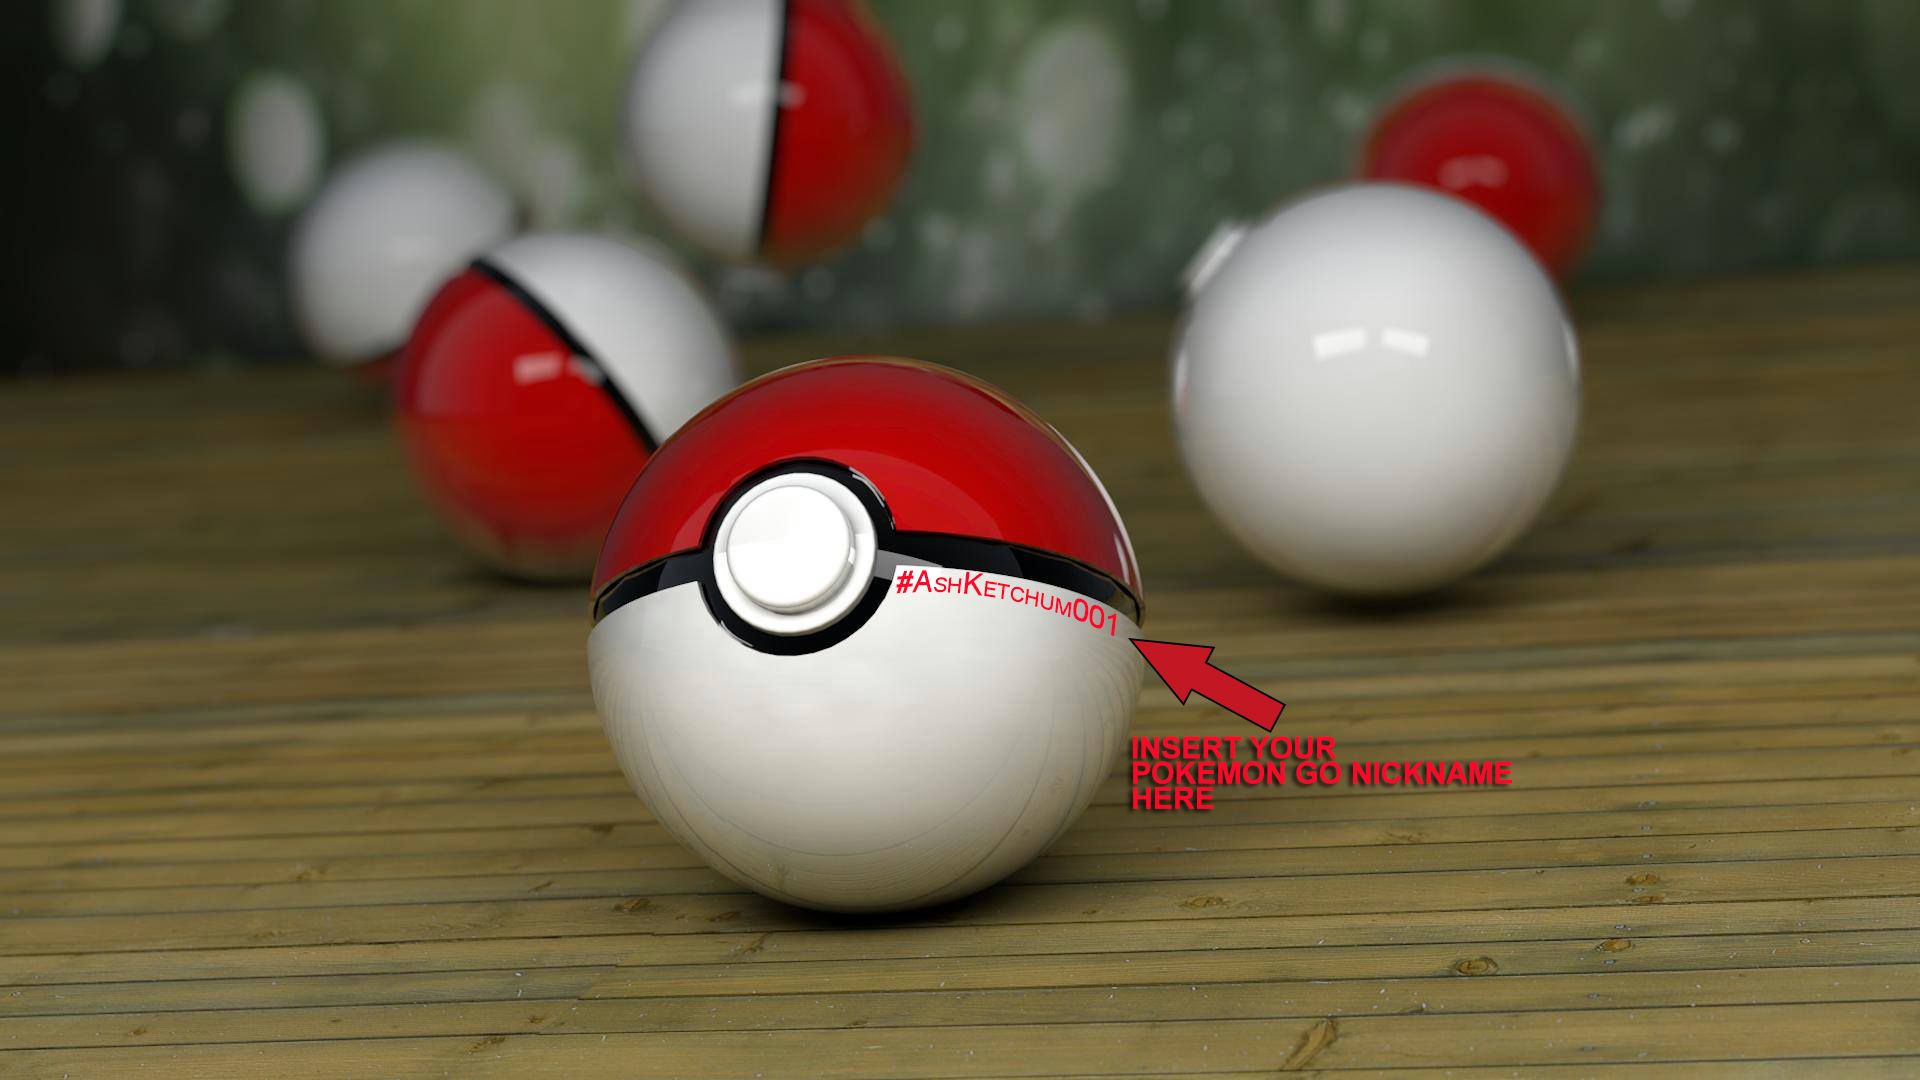 Personalized Pokemon Go PLUS Ball- 3D Hi quality with included Pokemon Go Nickname. The product is 3D printed PPE ball, painted with hi quality paint by Maltese Artist. Your Pokemon Go nickname will be hand painted in the ball. Its ideal for present and personal collection.